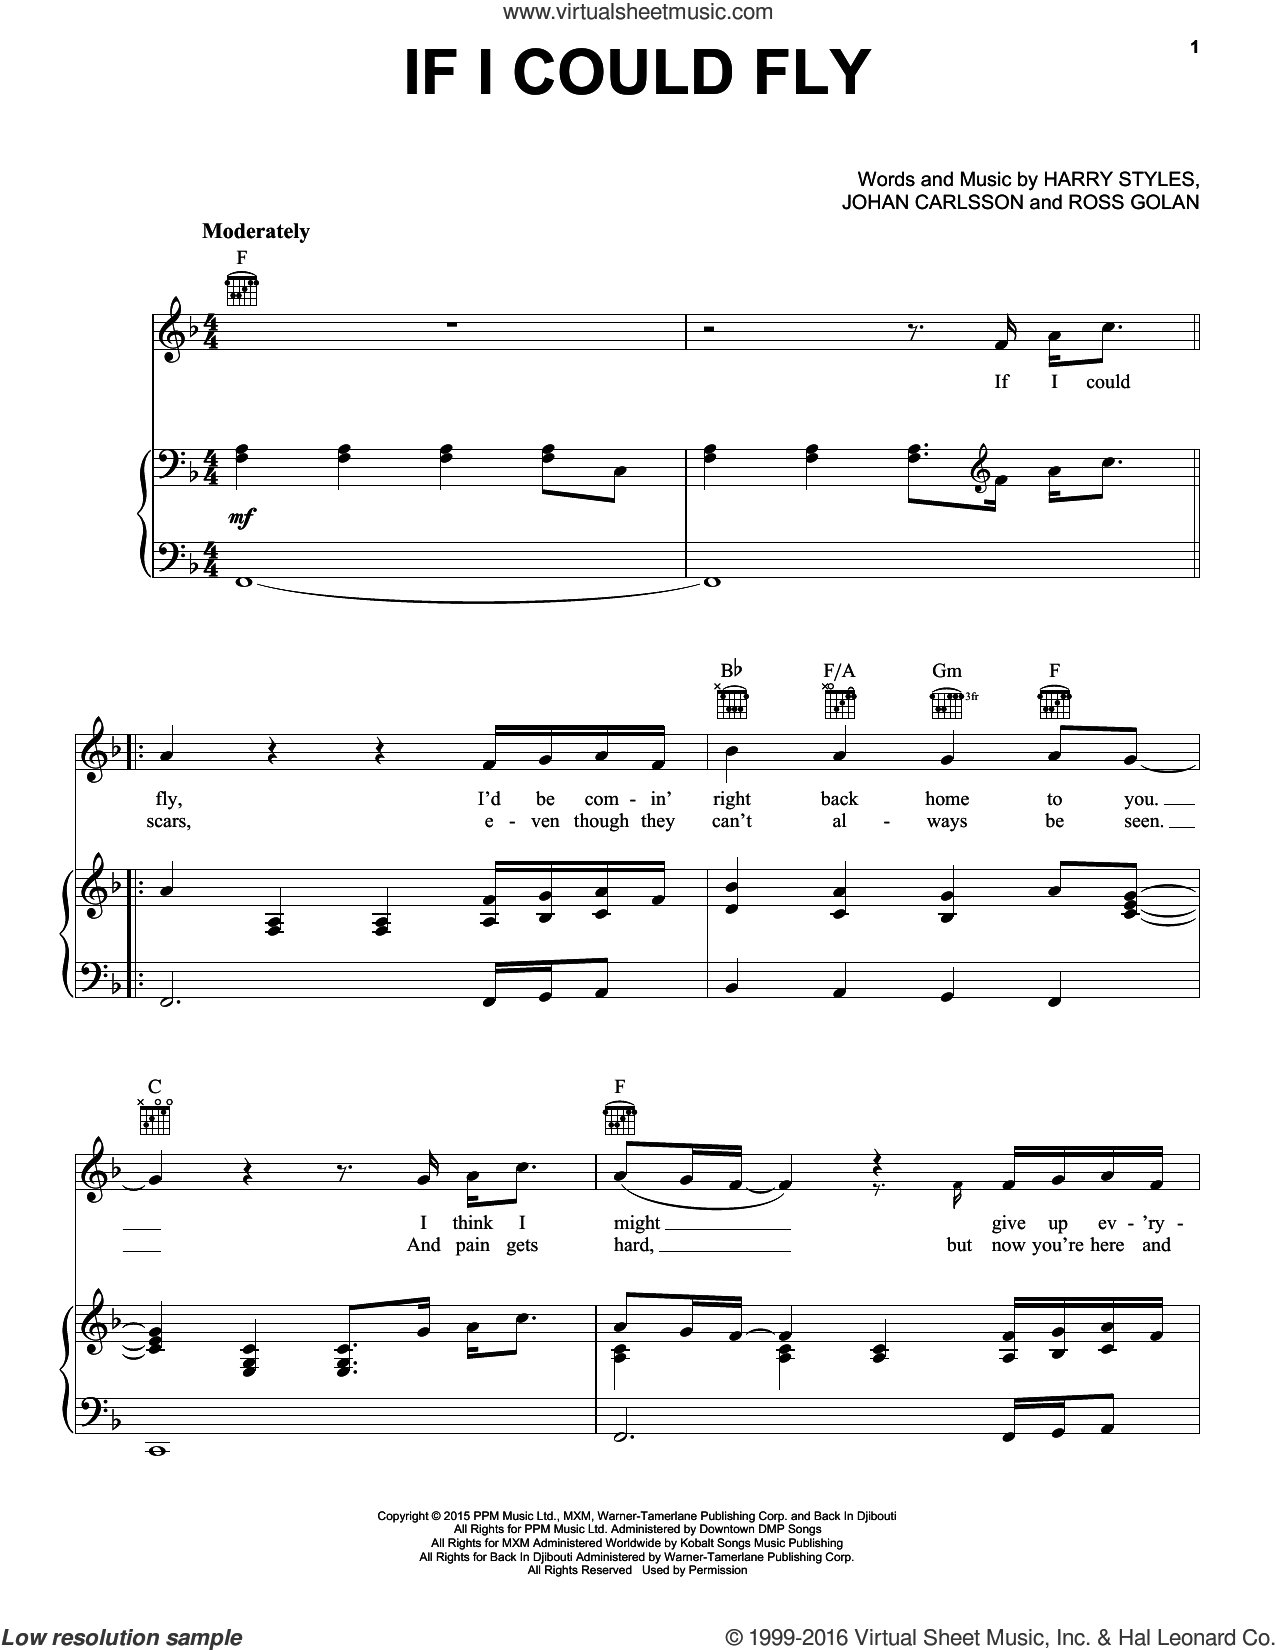 If I Could Fly sheet music for voice, piano or guitar by One Direction, Harry Styles, Johan Carlsson and Ross Golan, intermediate skill level